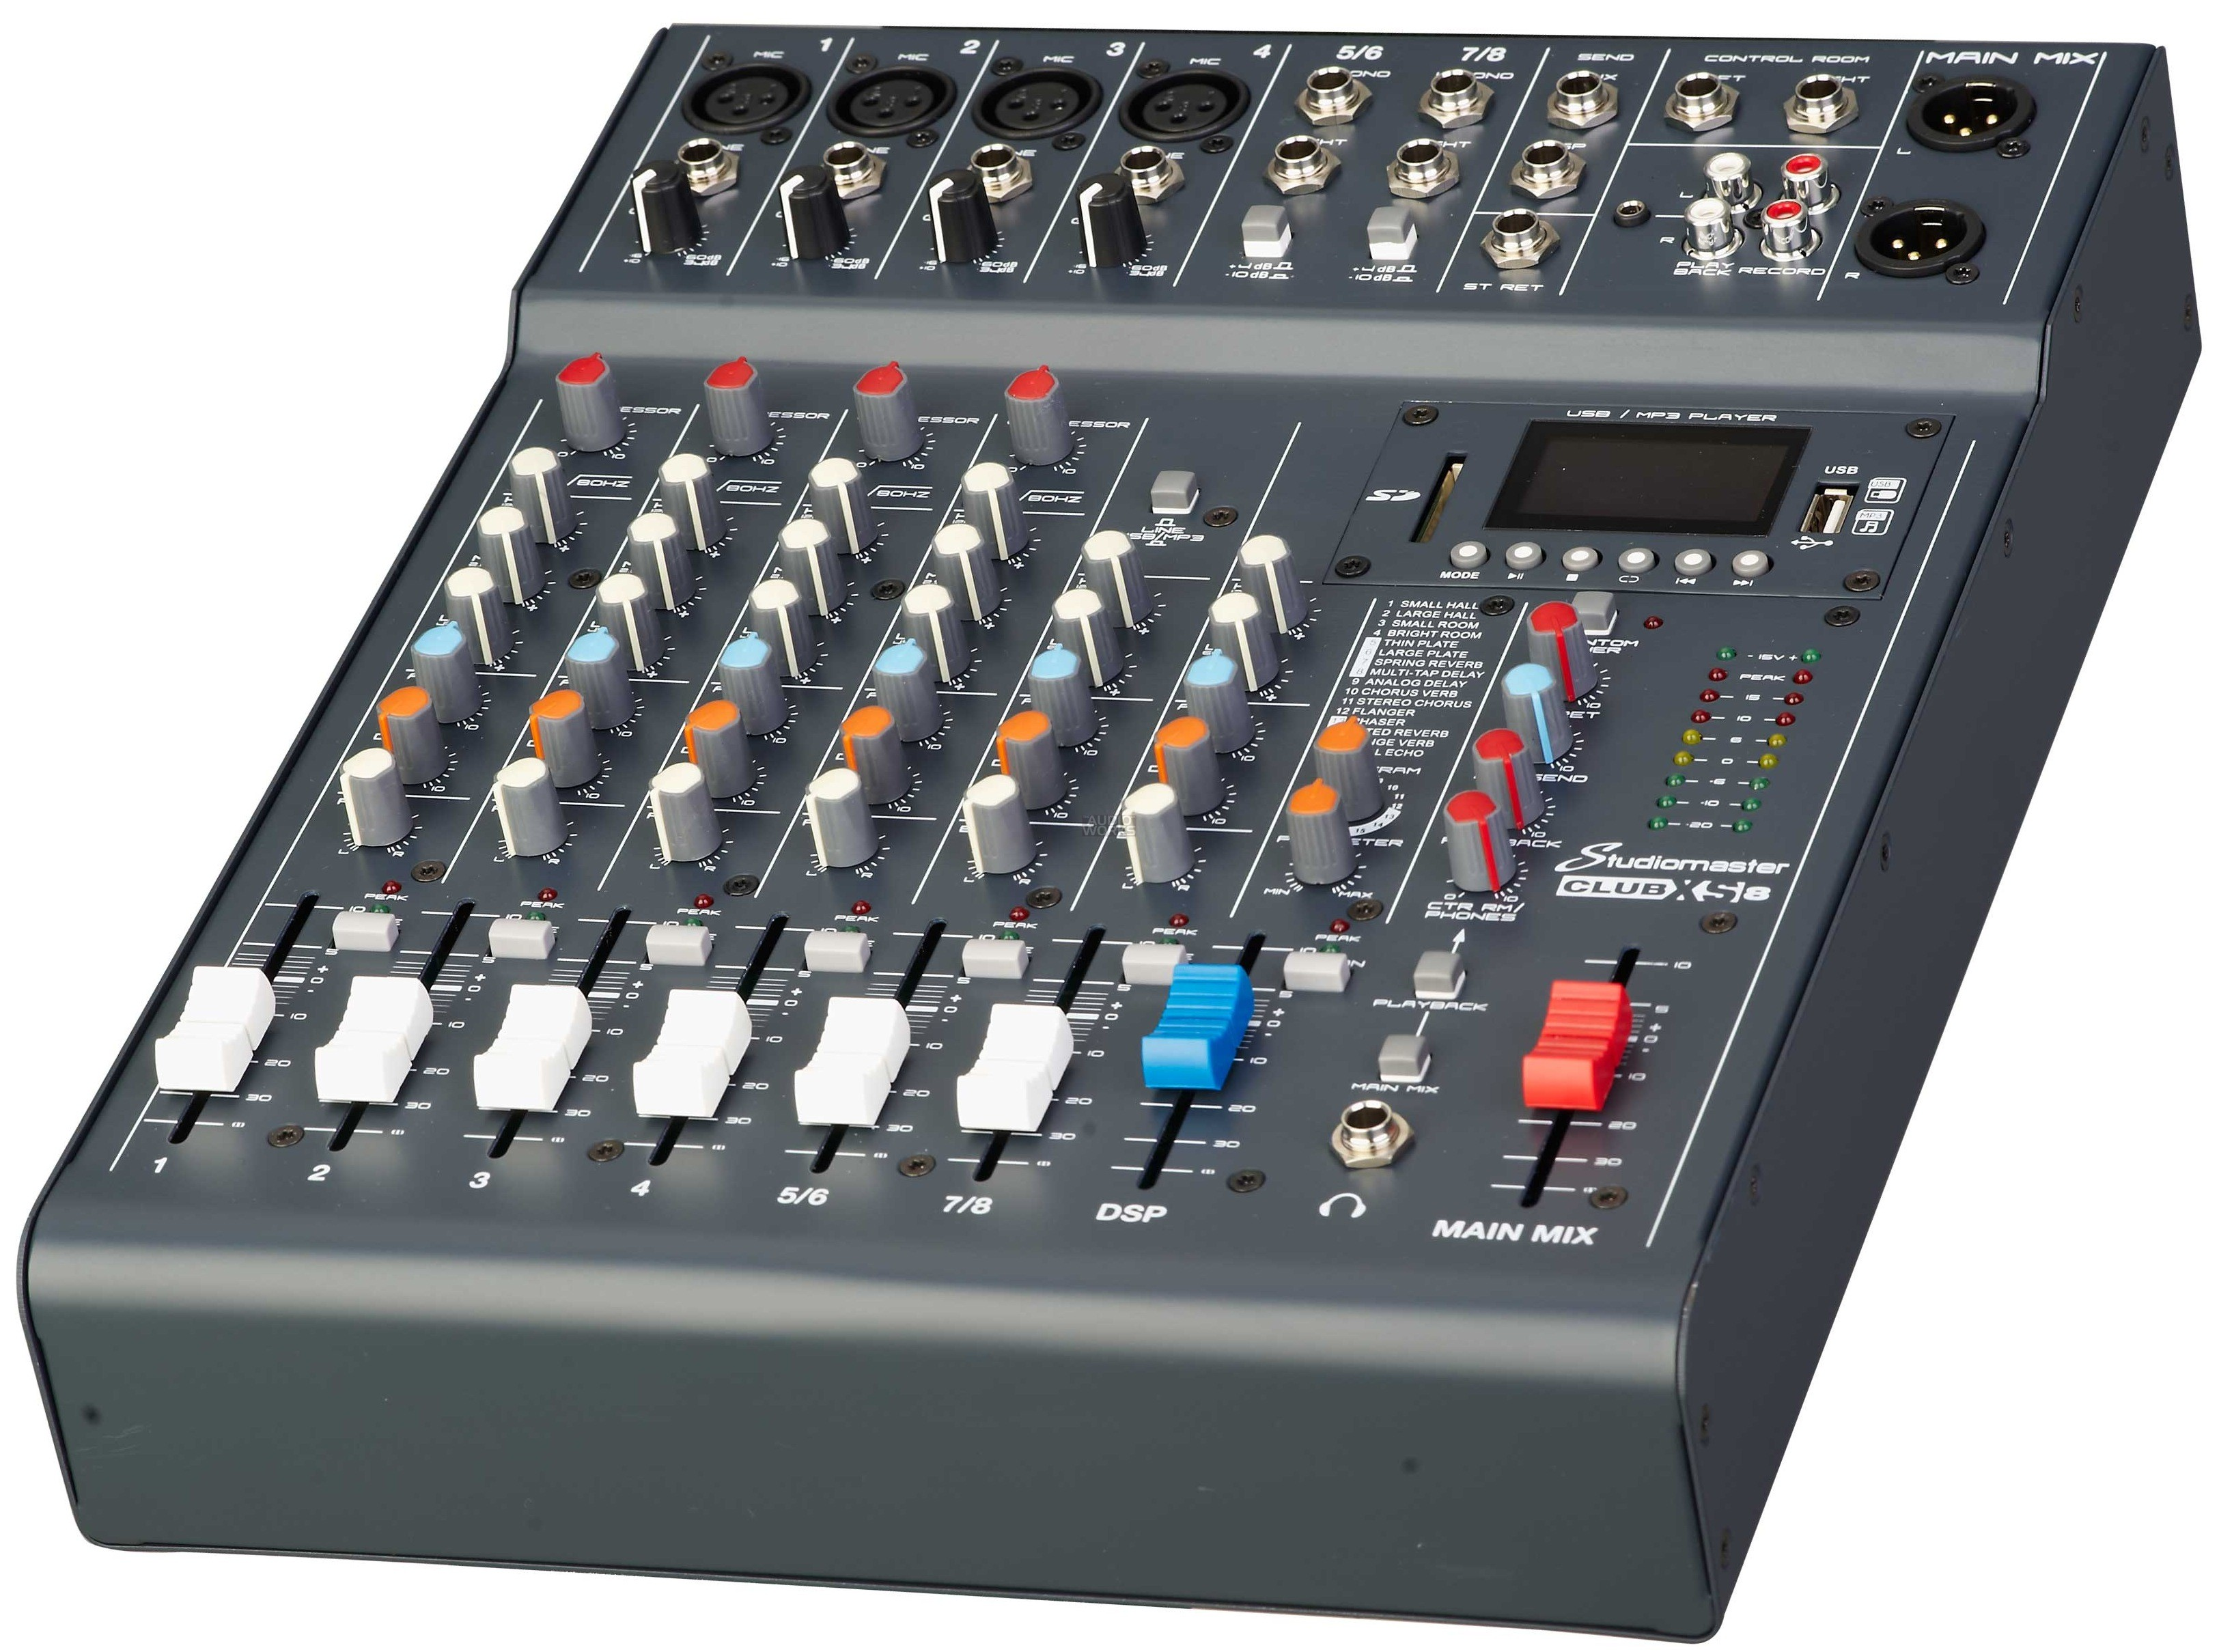 studiomaster club xs 8 8ch mixer with mp3 sd usb bluetoooth playback at audio works. Black Bedroom Furniture Sets. Home Design Ideas